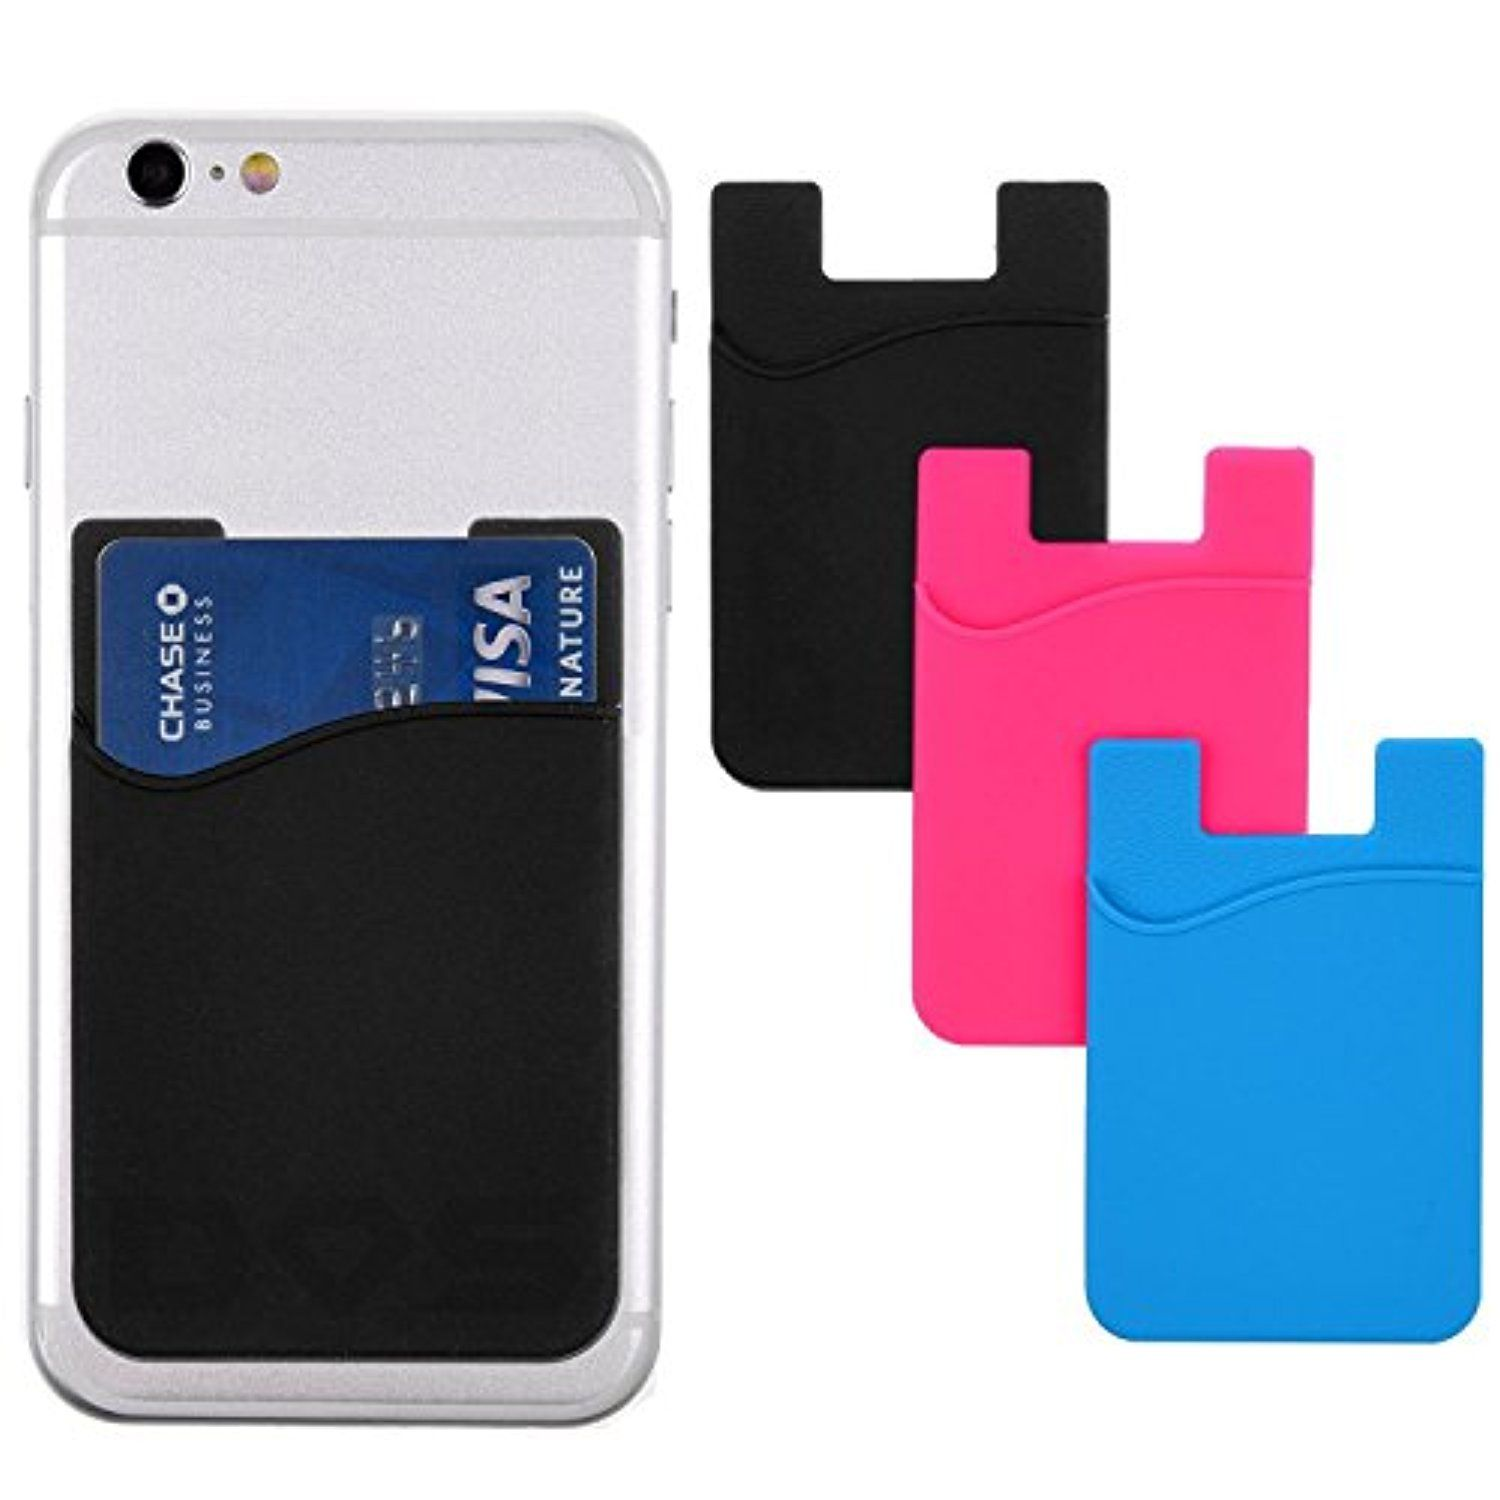 Stick on wallet idcredit card holder for phones strong 3m stick on wallet idcredit card holder for phones strong adhesive universal size fits most phones including iphone samsung galaxy non slip silicone magicingreecefo Images